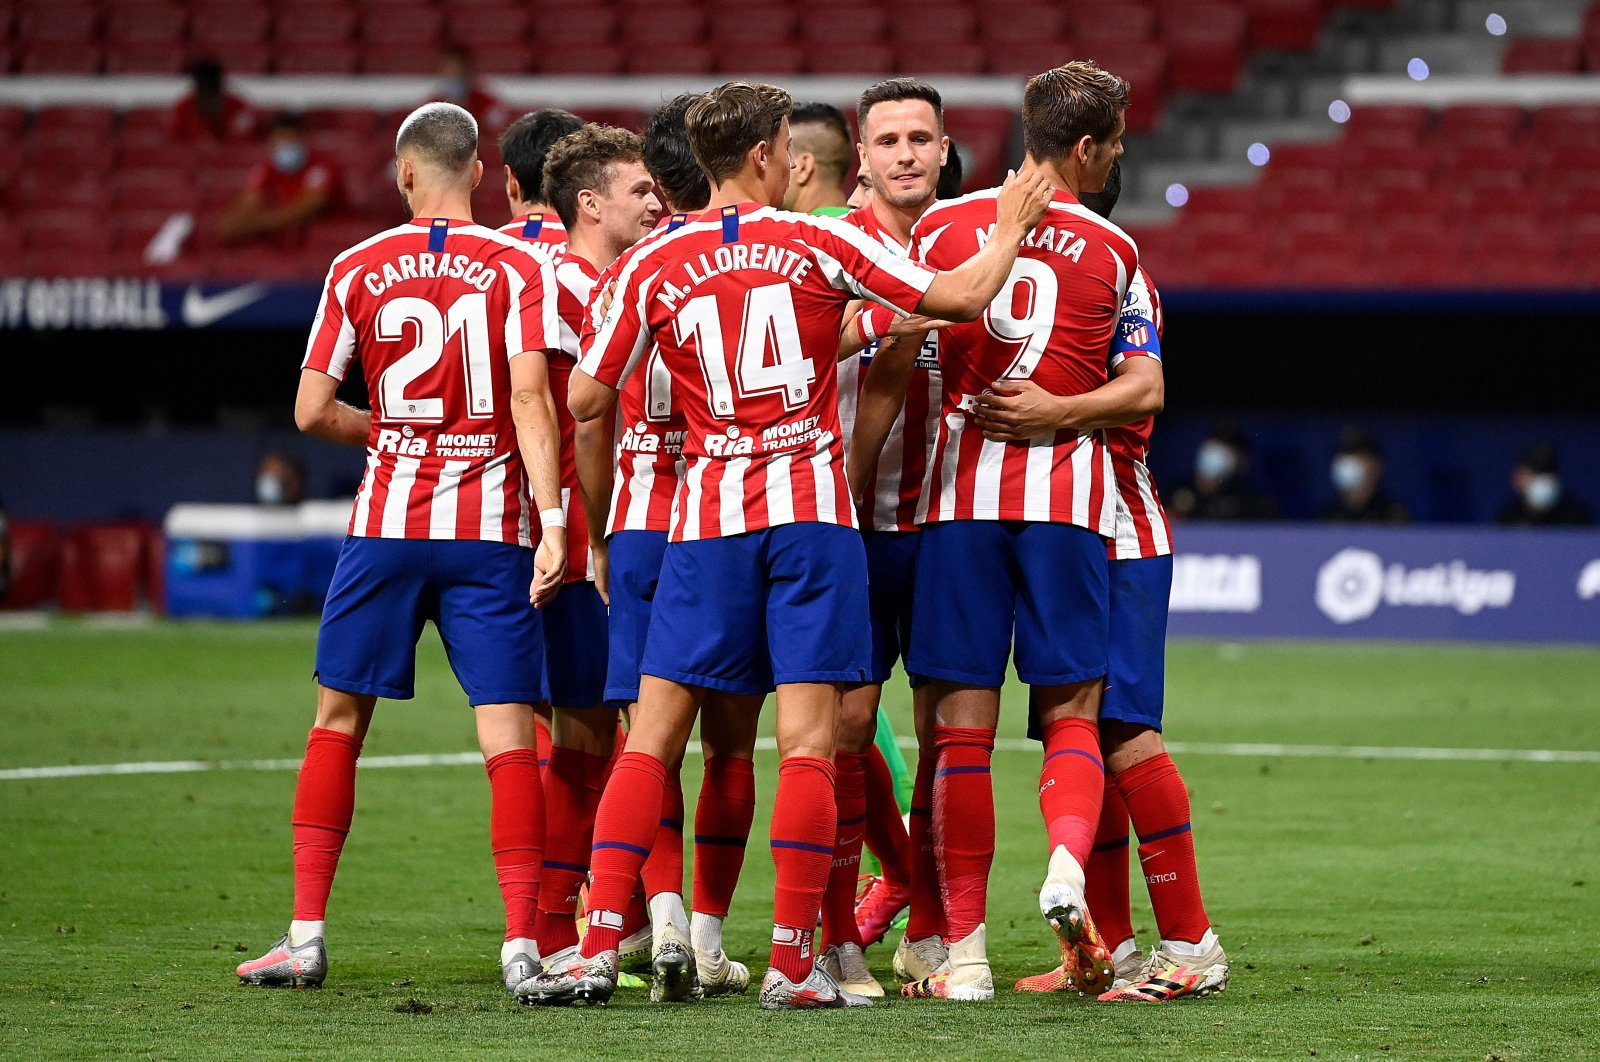 Atletico Madrid's players celebrate during a Spanish La Liga football match against Mallorca, in Madrid, Spain, July 3, 2020. (AFP Photo)